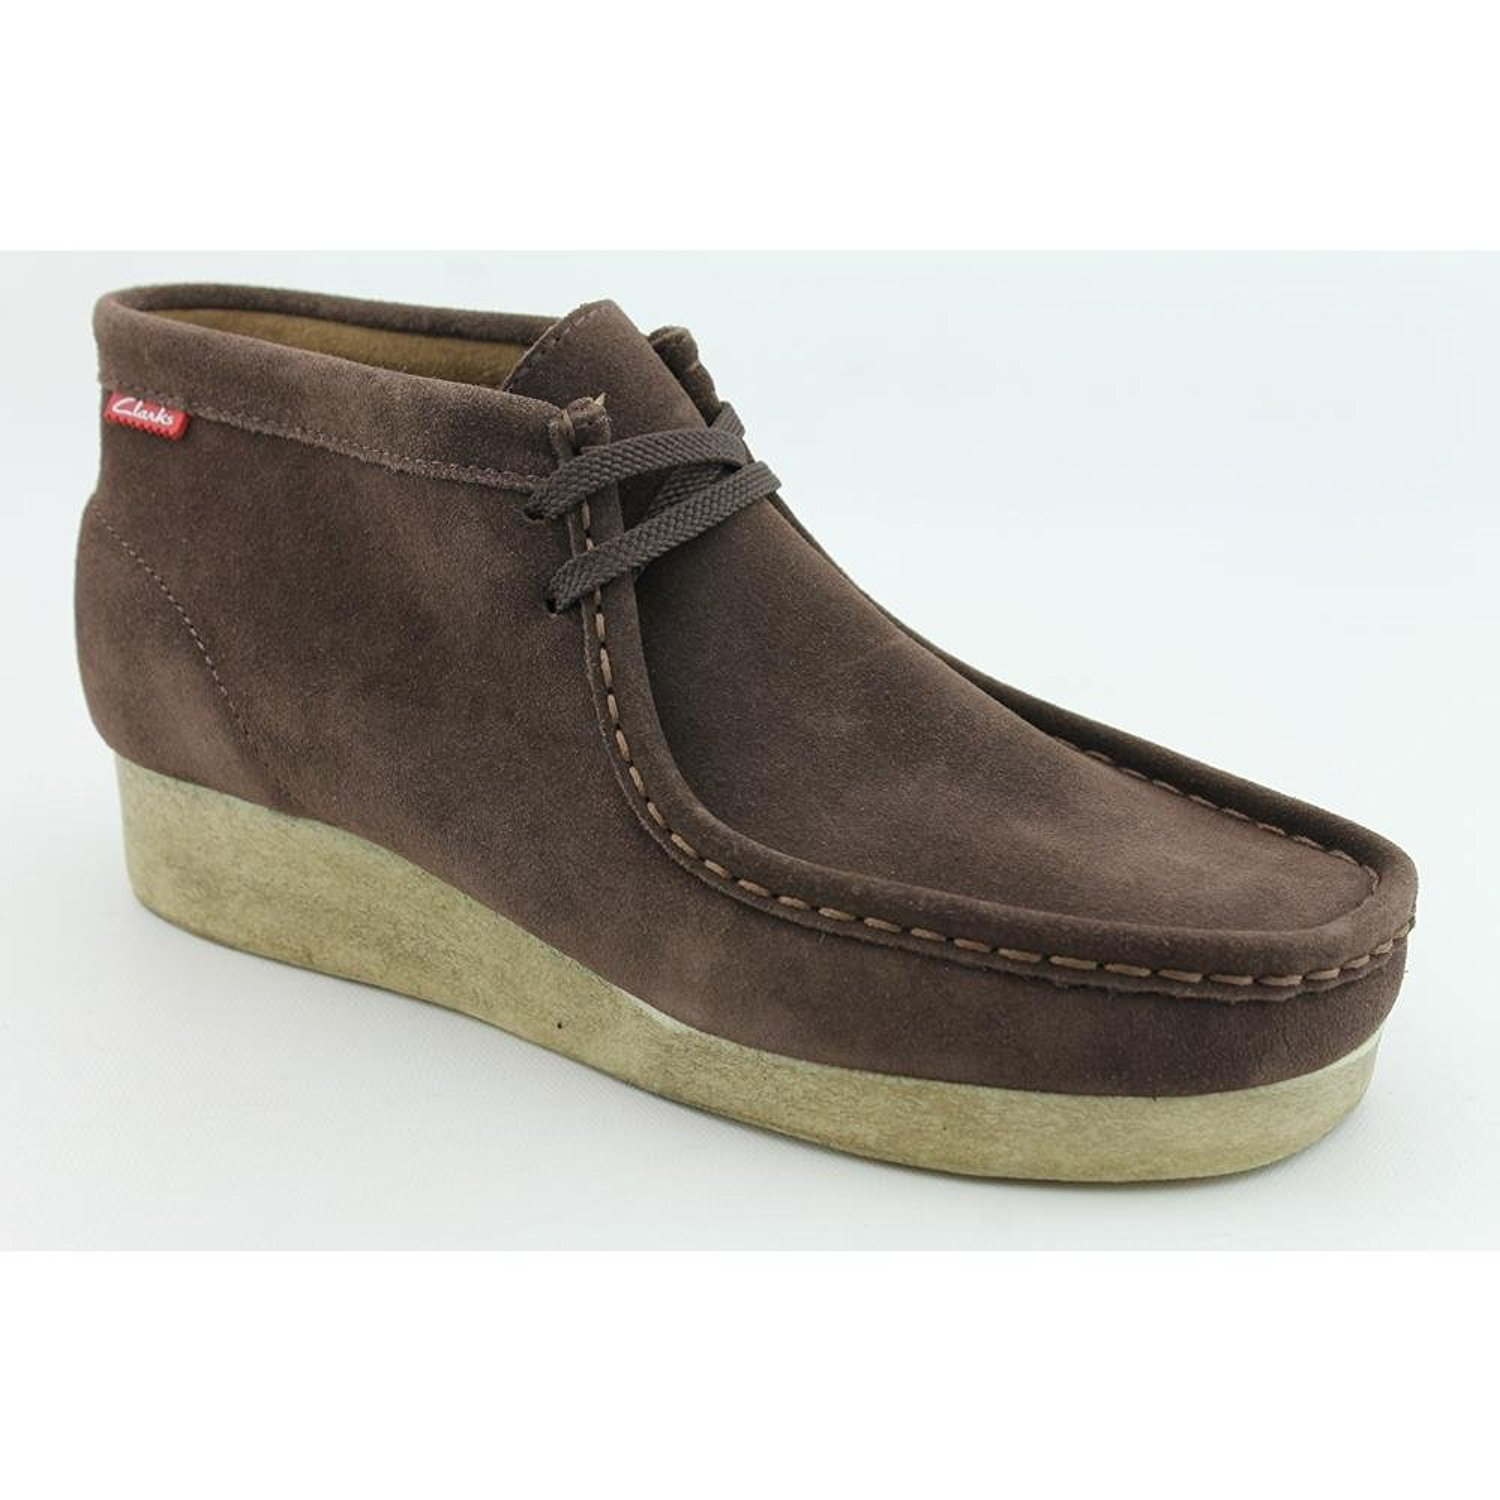 Clarks Wallabees Men | Wallabees Shoes | Wallabees Shoes Mens